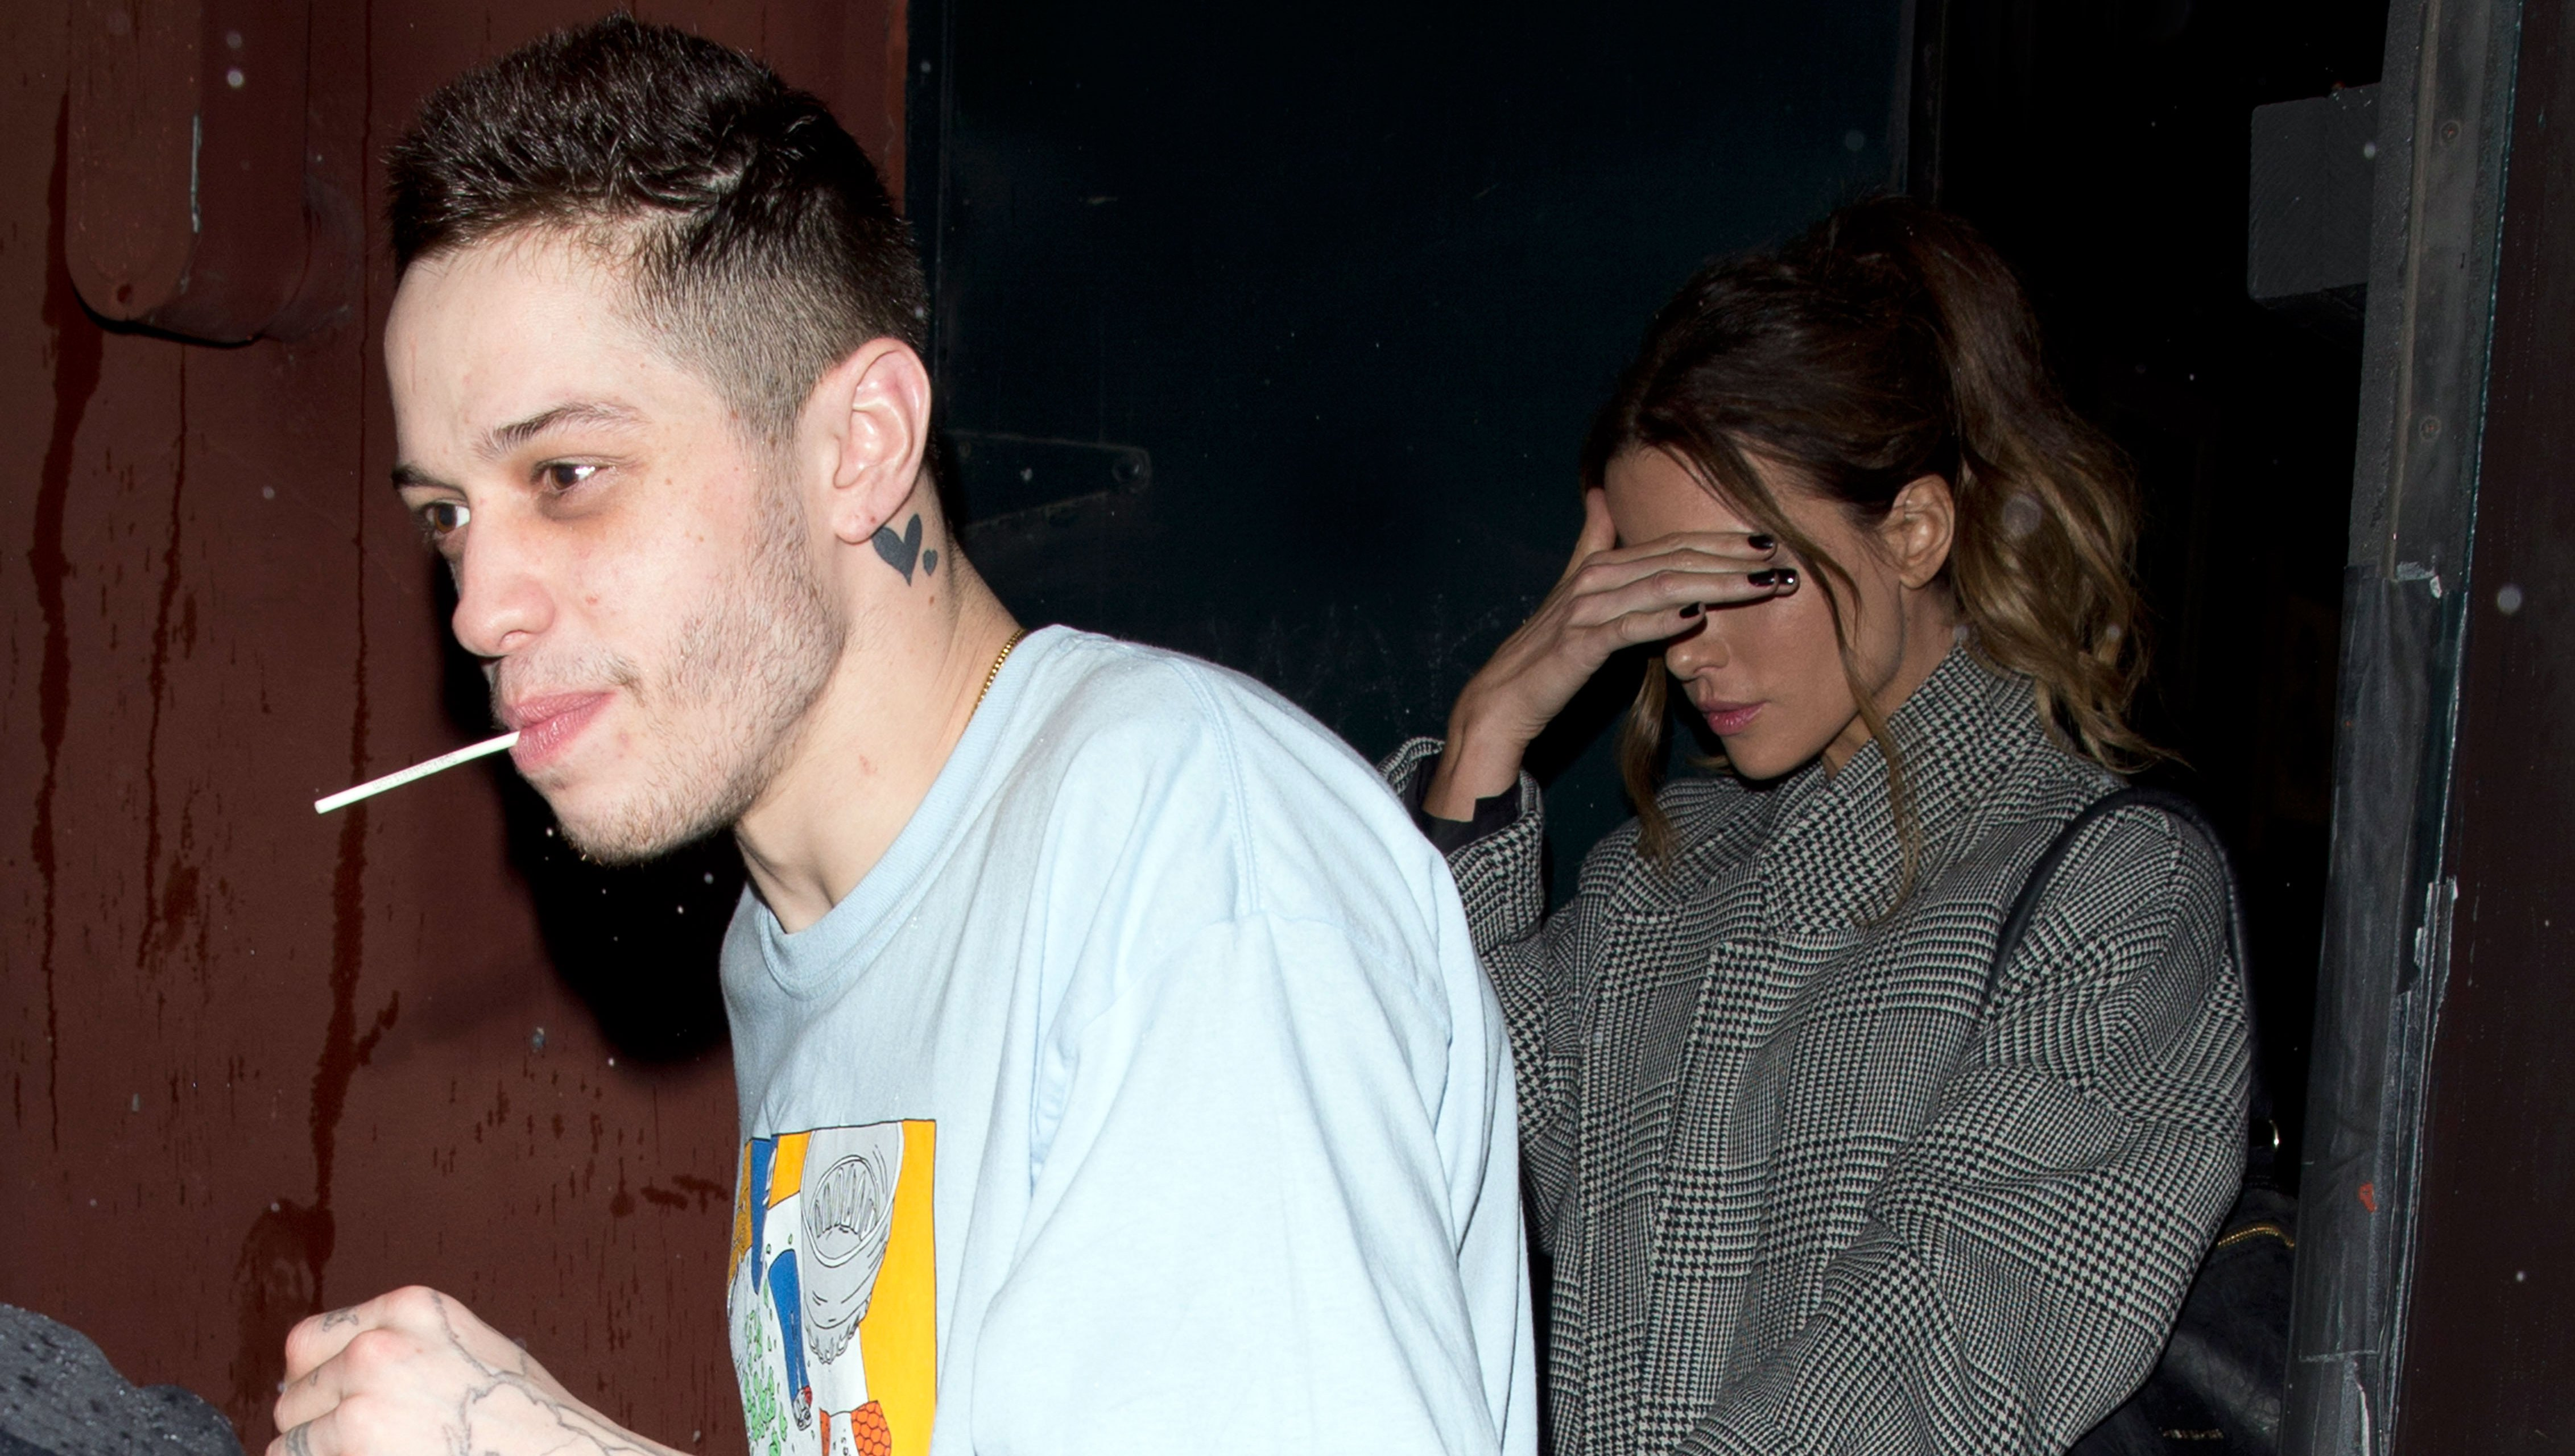 Kate Beckinsale 'Is Happy With' Pete Davidson: 'They Have Great Chemistry'